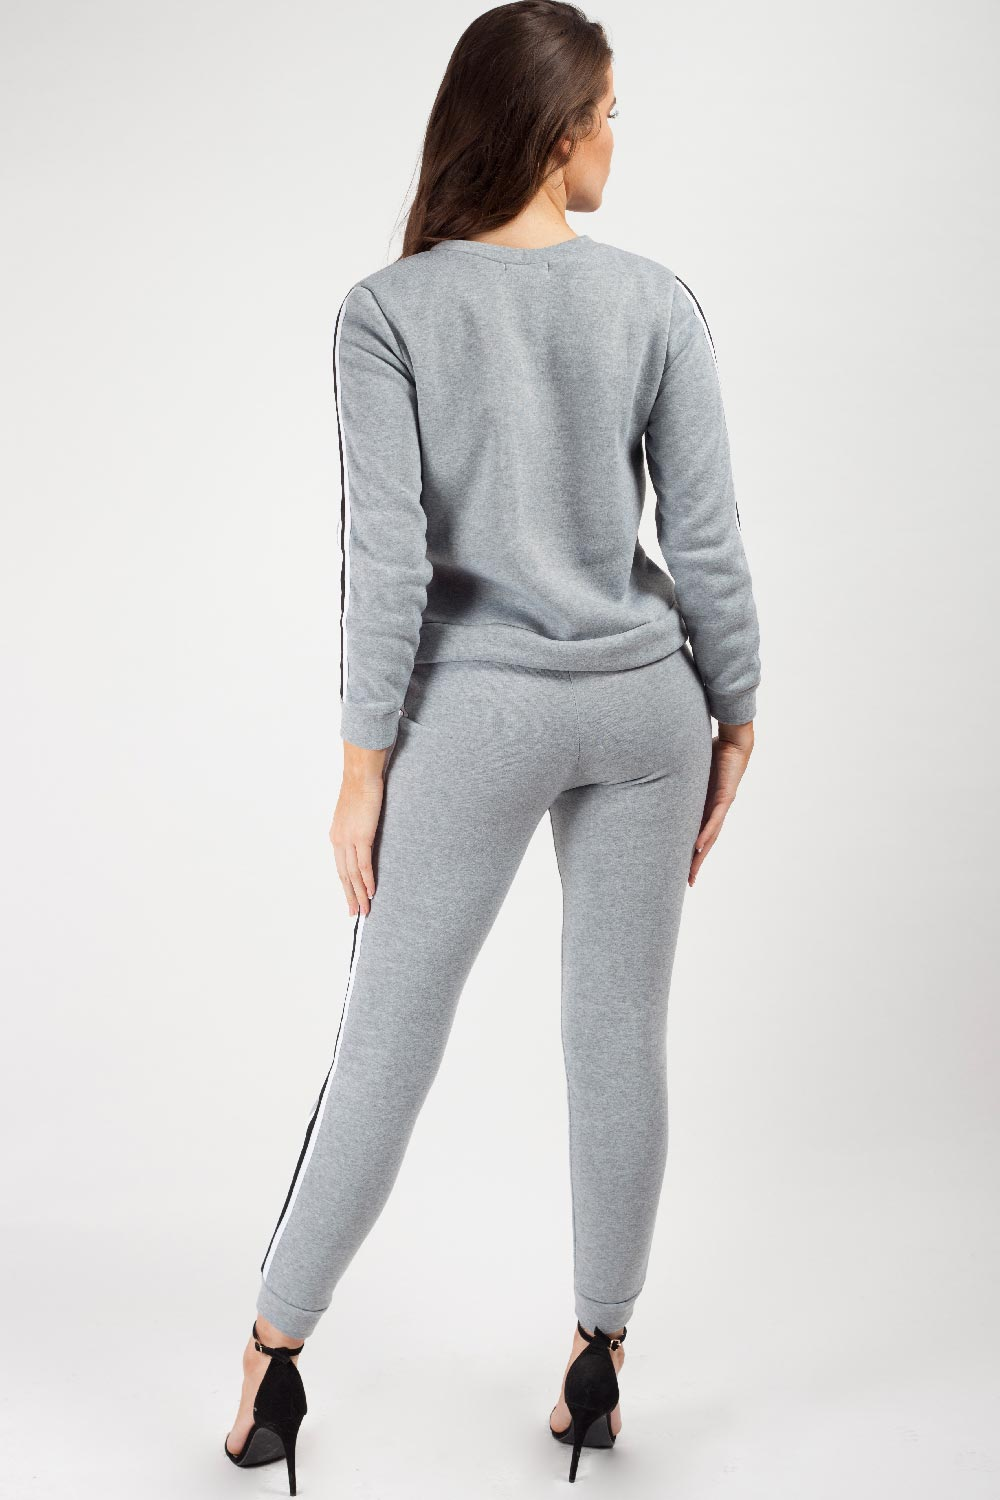 grey two piece tracksuit set womens